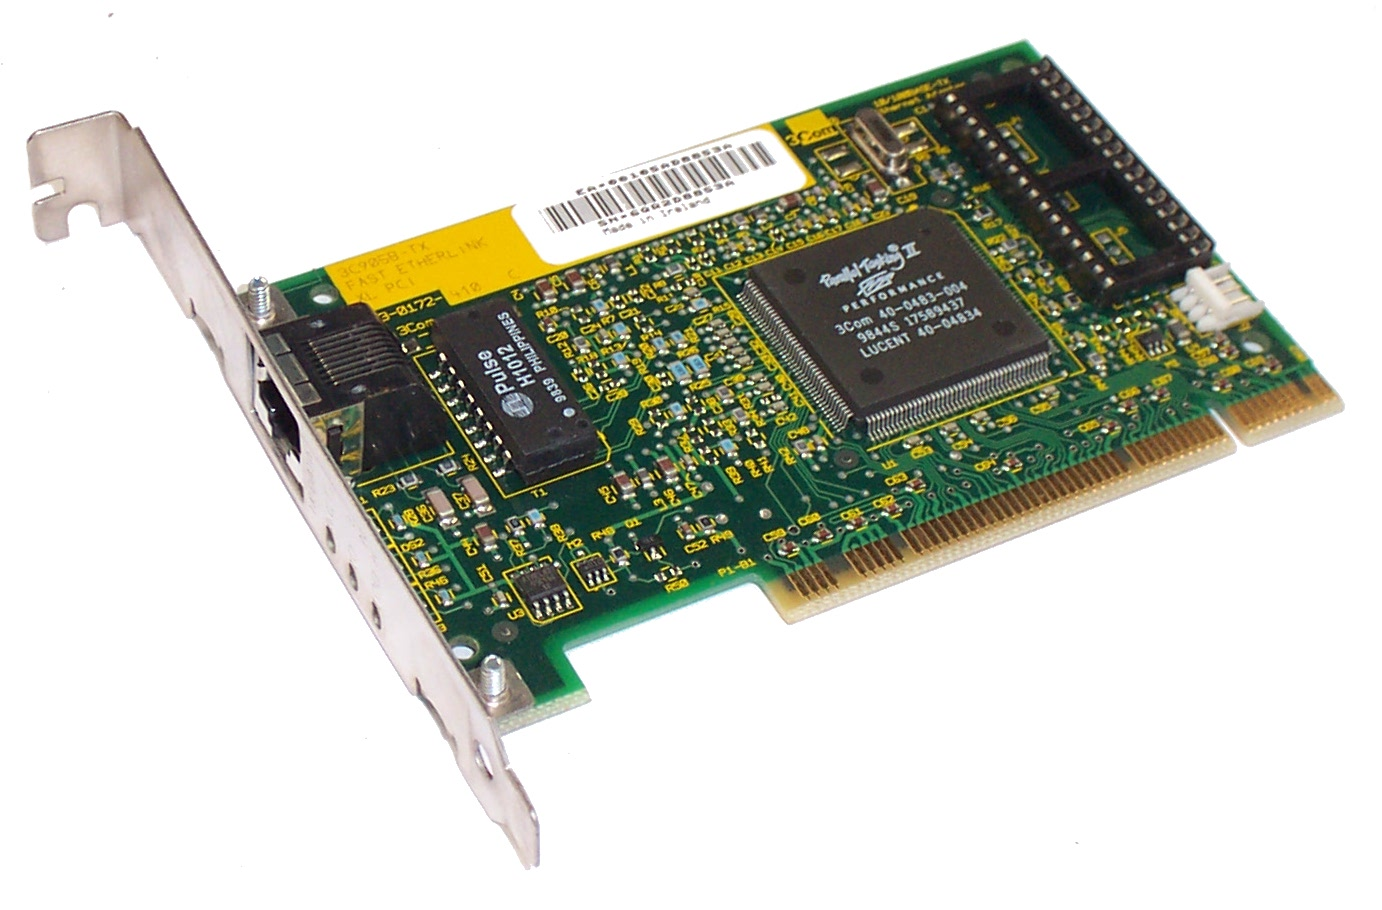 3COM 3C905C-TX ETHERNET DRIVER FOR PC